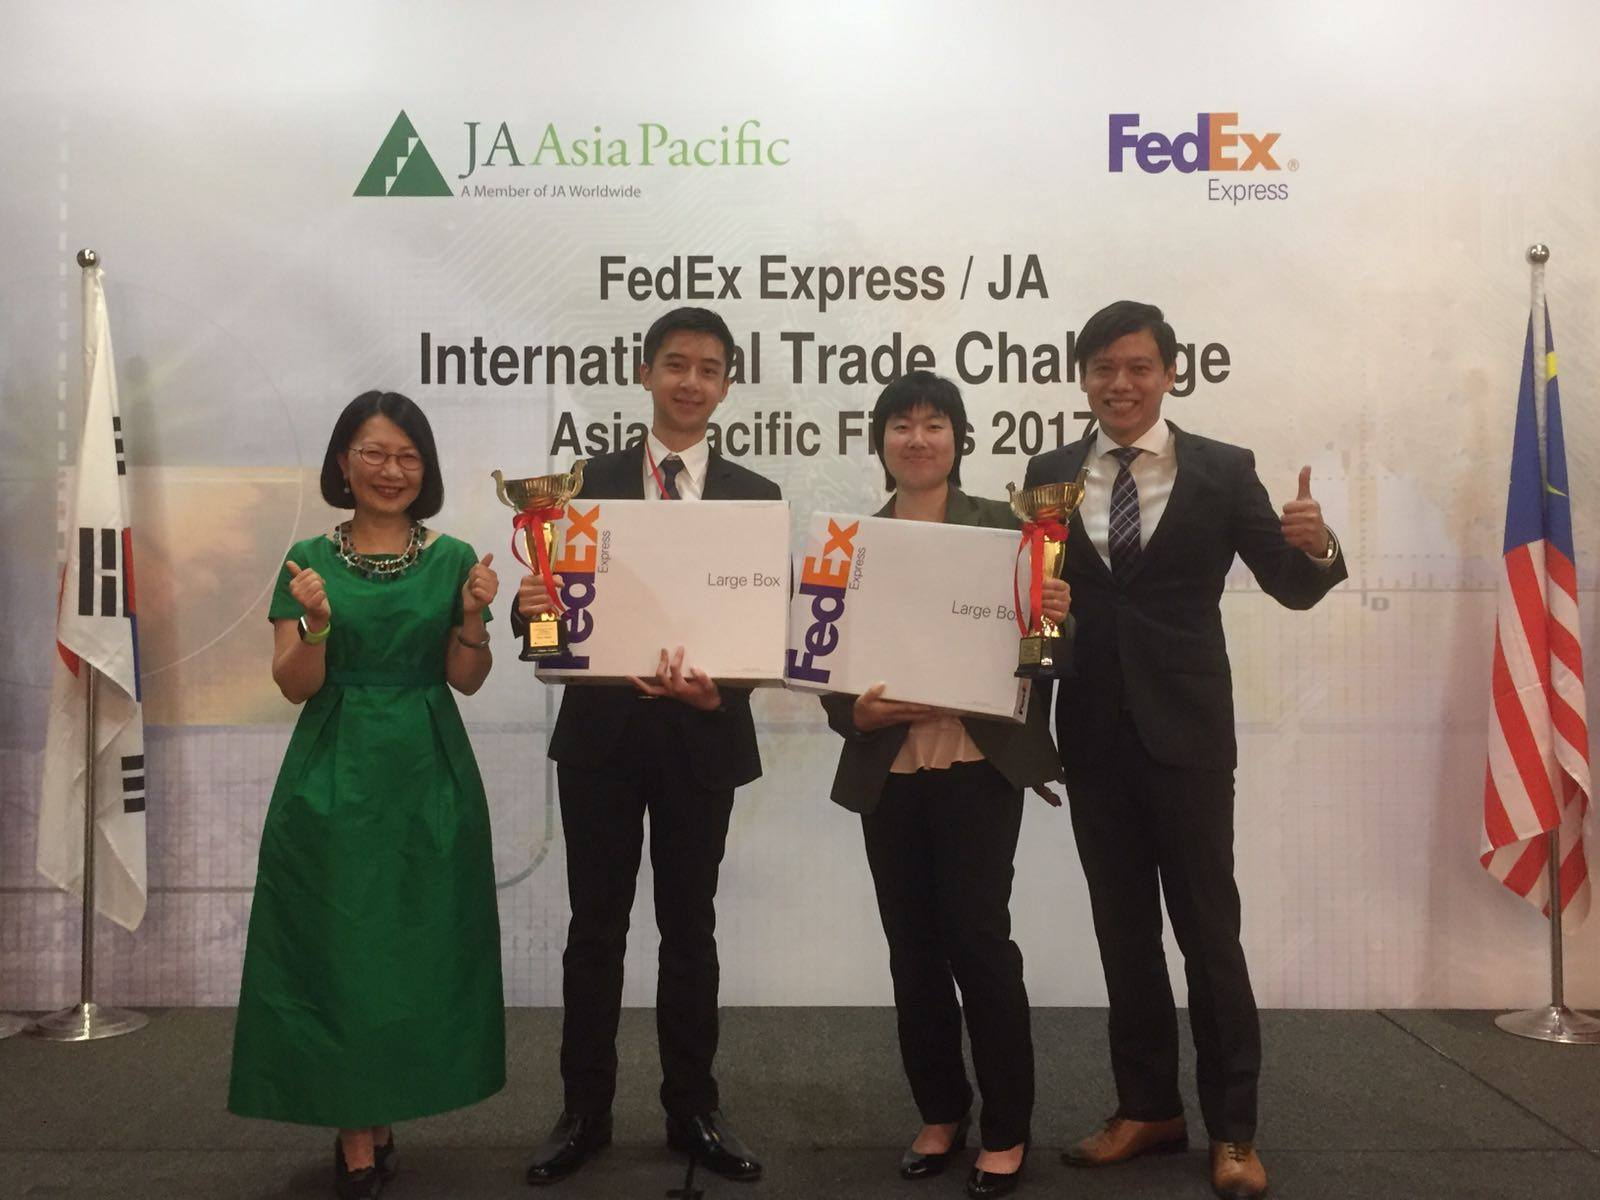 The winning team is Team Everest: Songen Yeung from JA Australia (2nd from right) and Manson So from JAHong Kong (2nd from left), with Vivian Lau, President, JA Asia Pacific, and Brian Tee, Managing Director of Sales, South Pacific Region, FedEx Express.